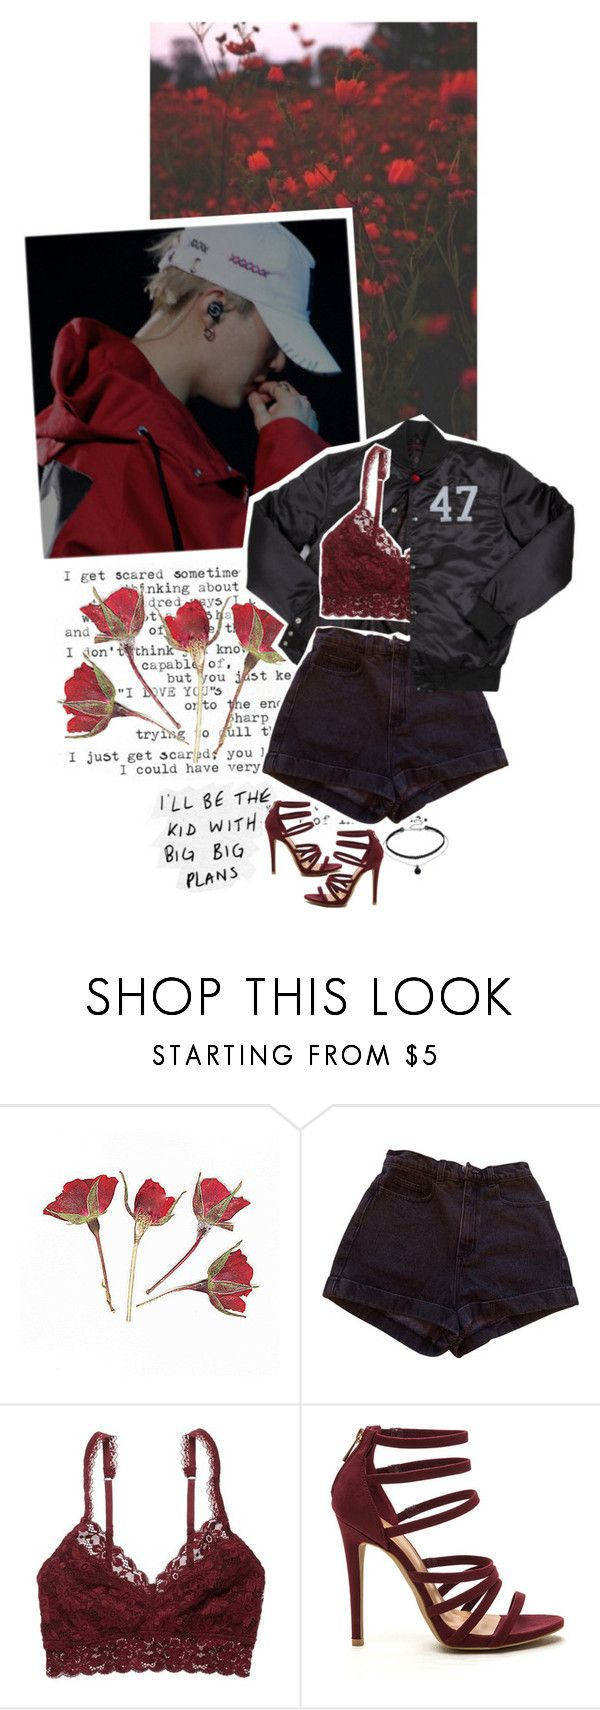 """""""The Kid with Big Plans feat. Min Yoongi"""" by luminoussuga ❤ liked on Polyvore featuring Trapstar, American Apparel and American Eagle Outfitters"""